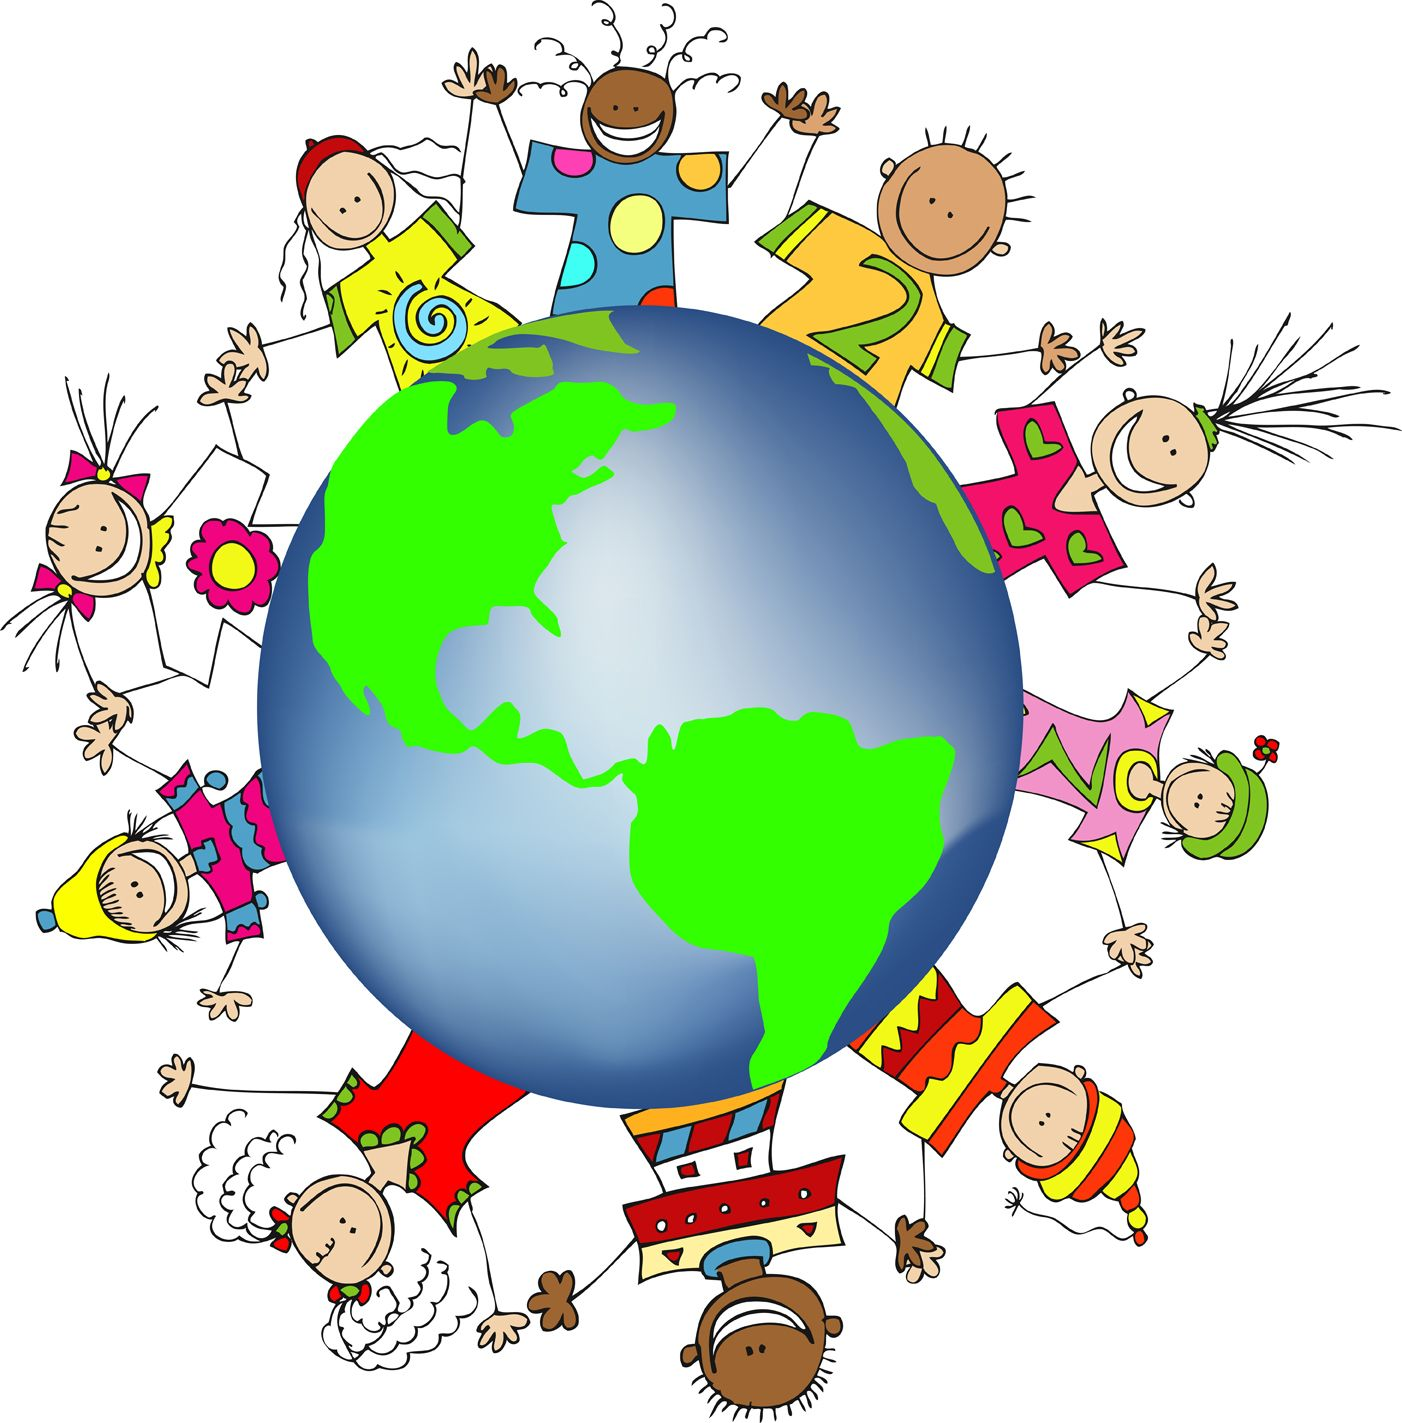 medium resolution of kids world hands friends networks globe illustration small free